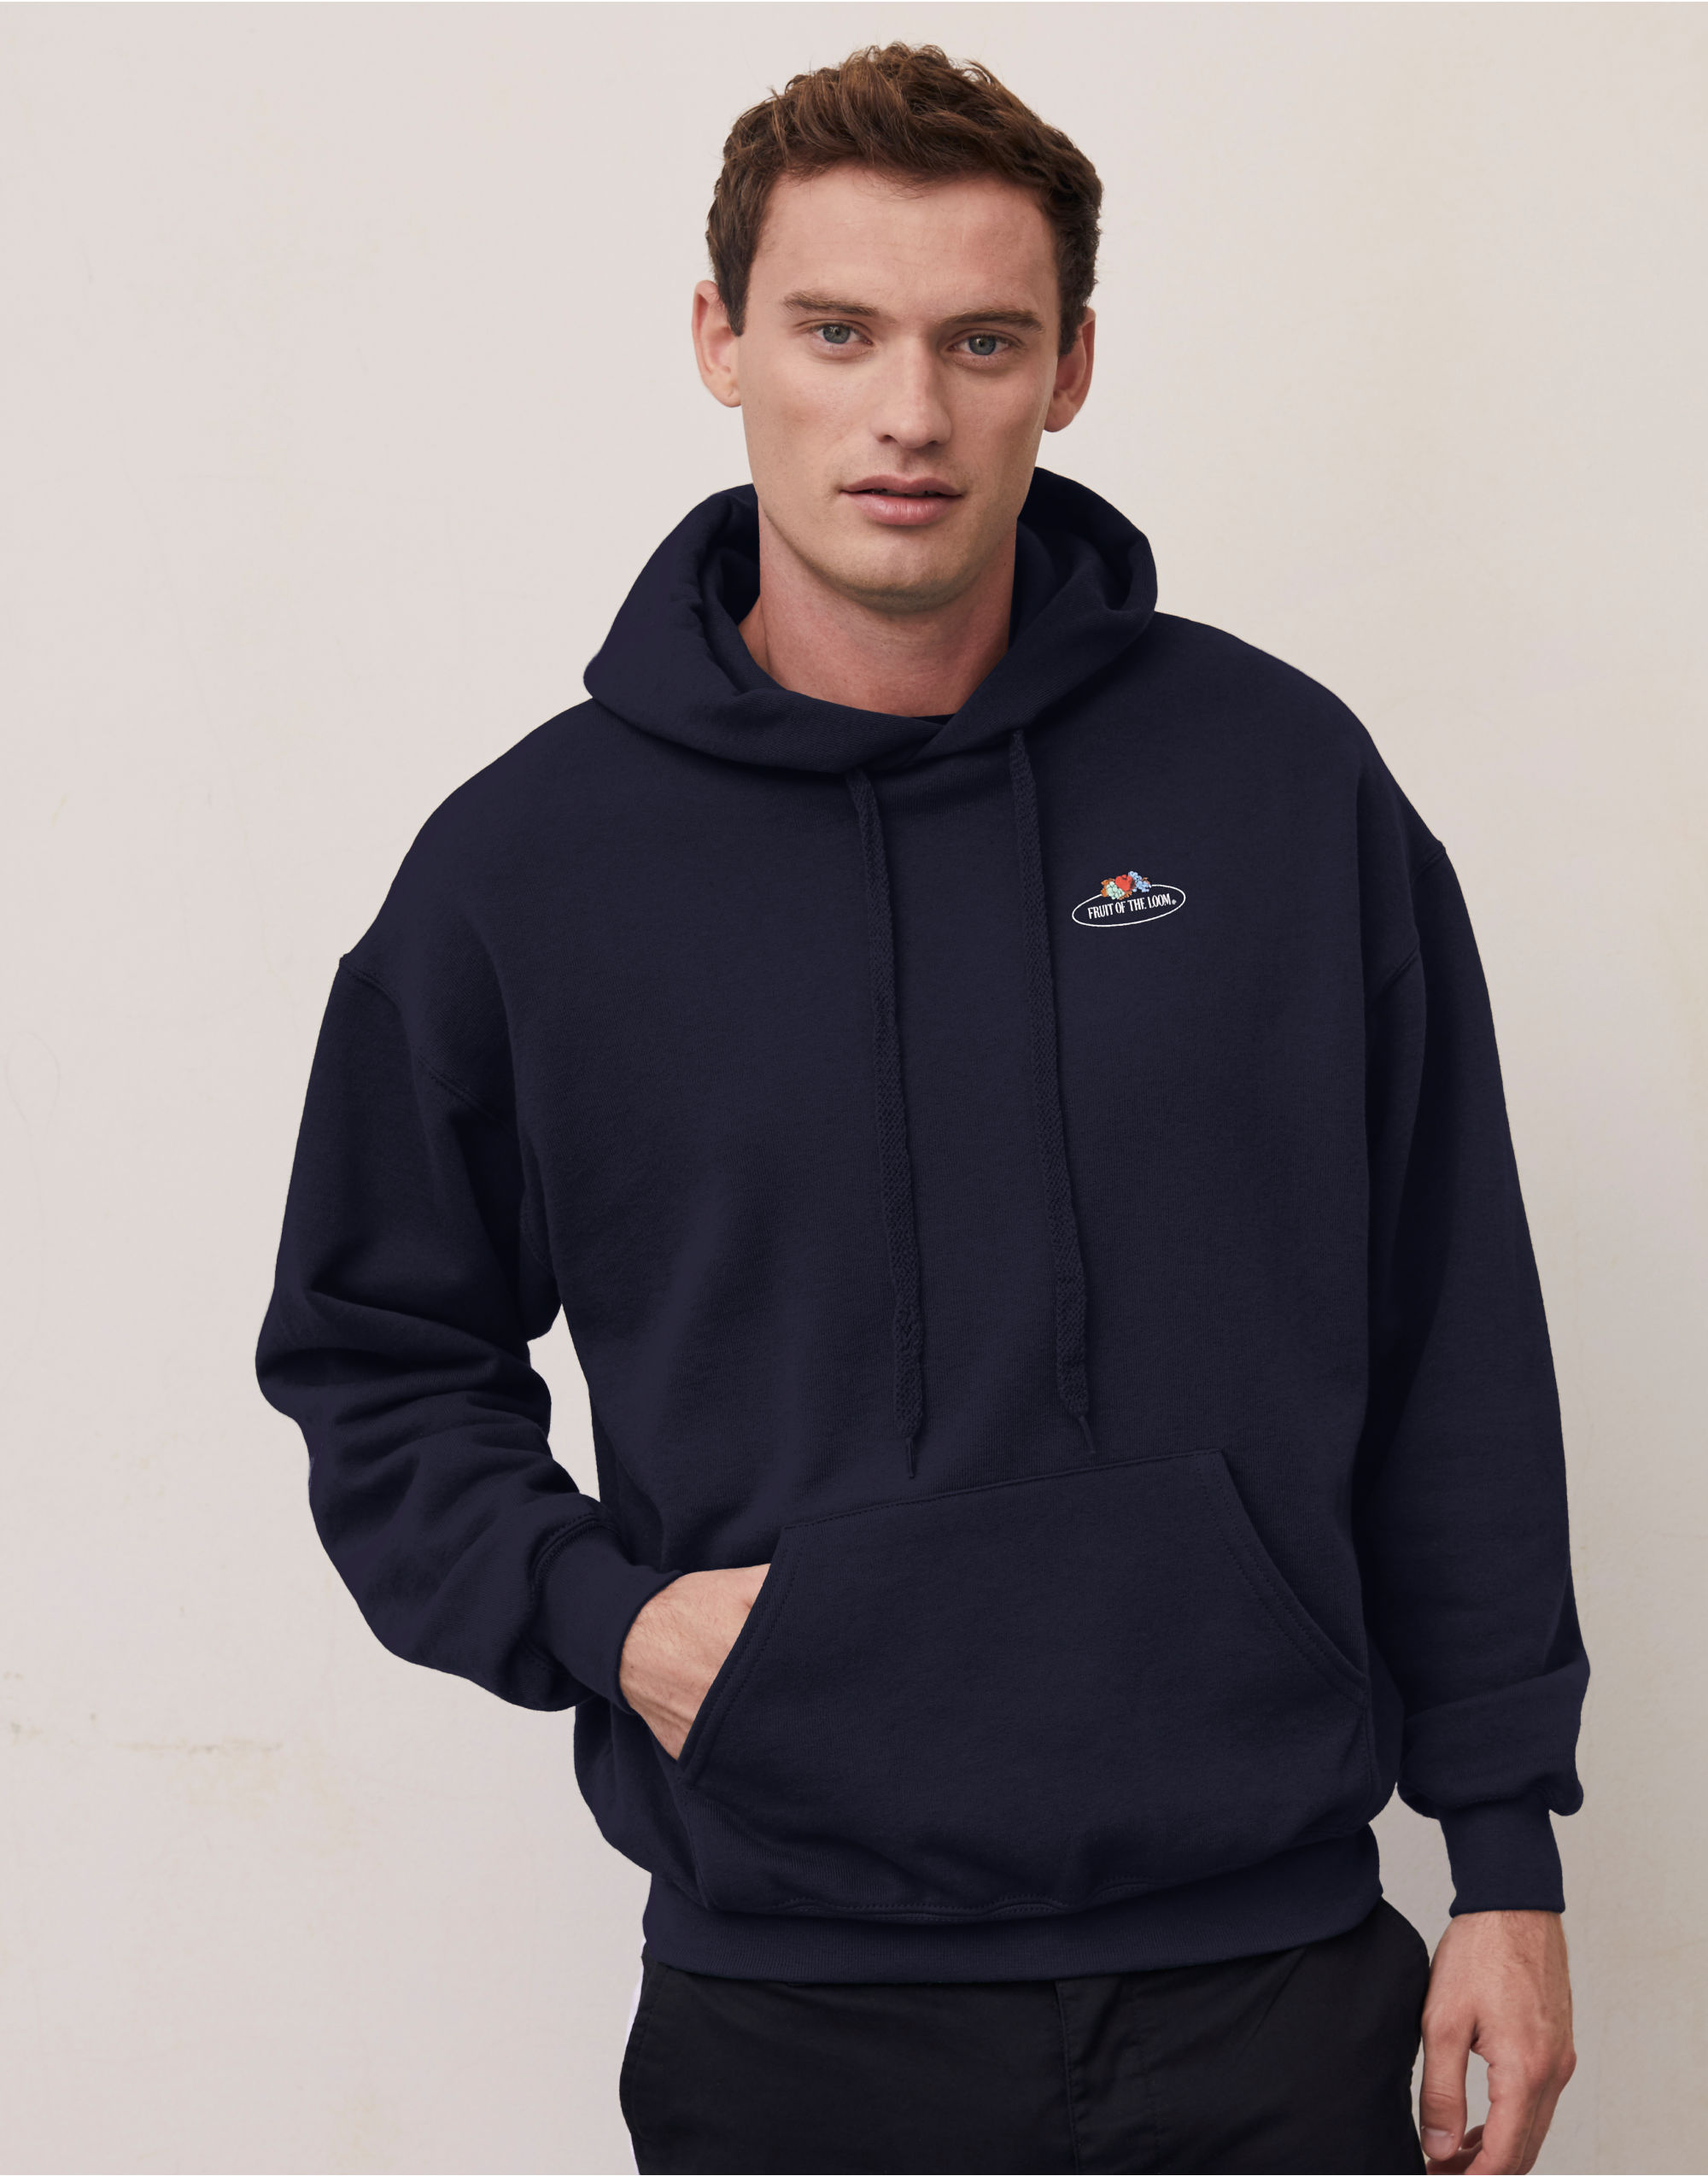 Fruit Of The Loom Retail Vintage Hooded Sweat with Small logo